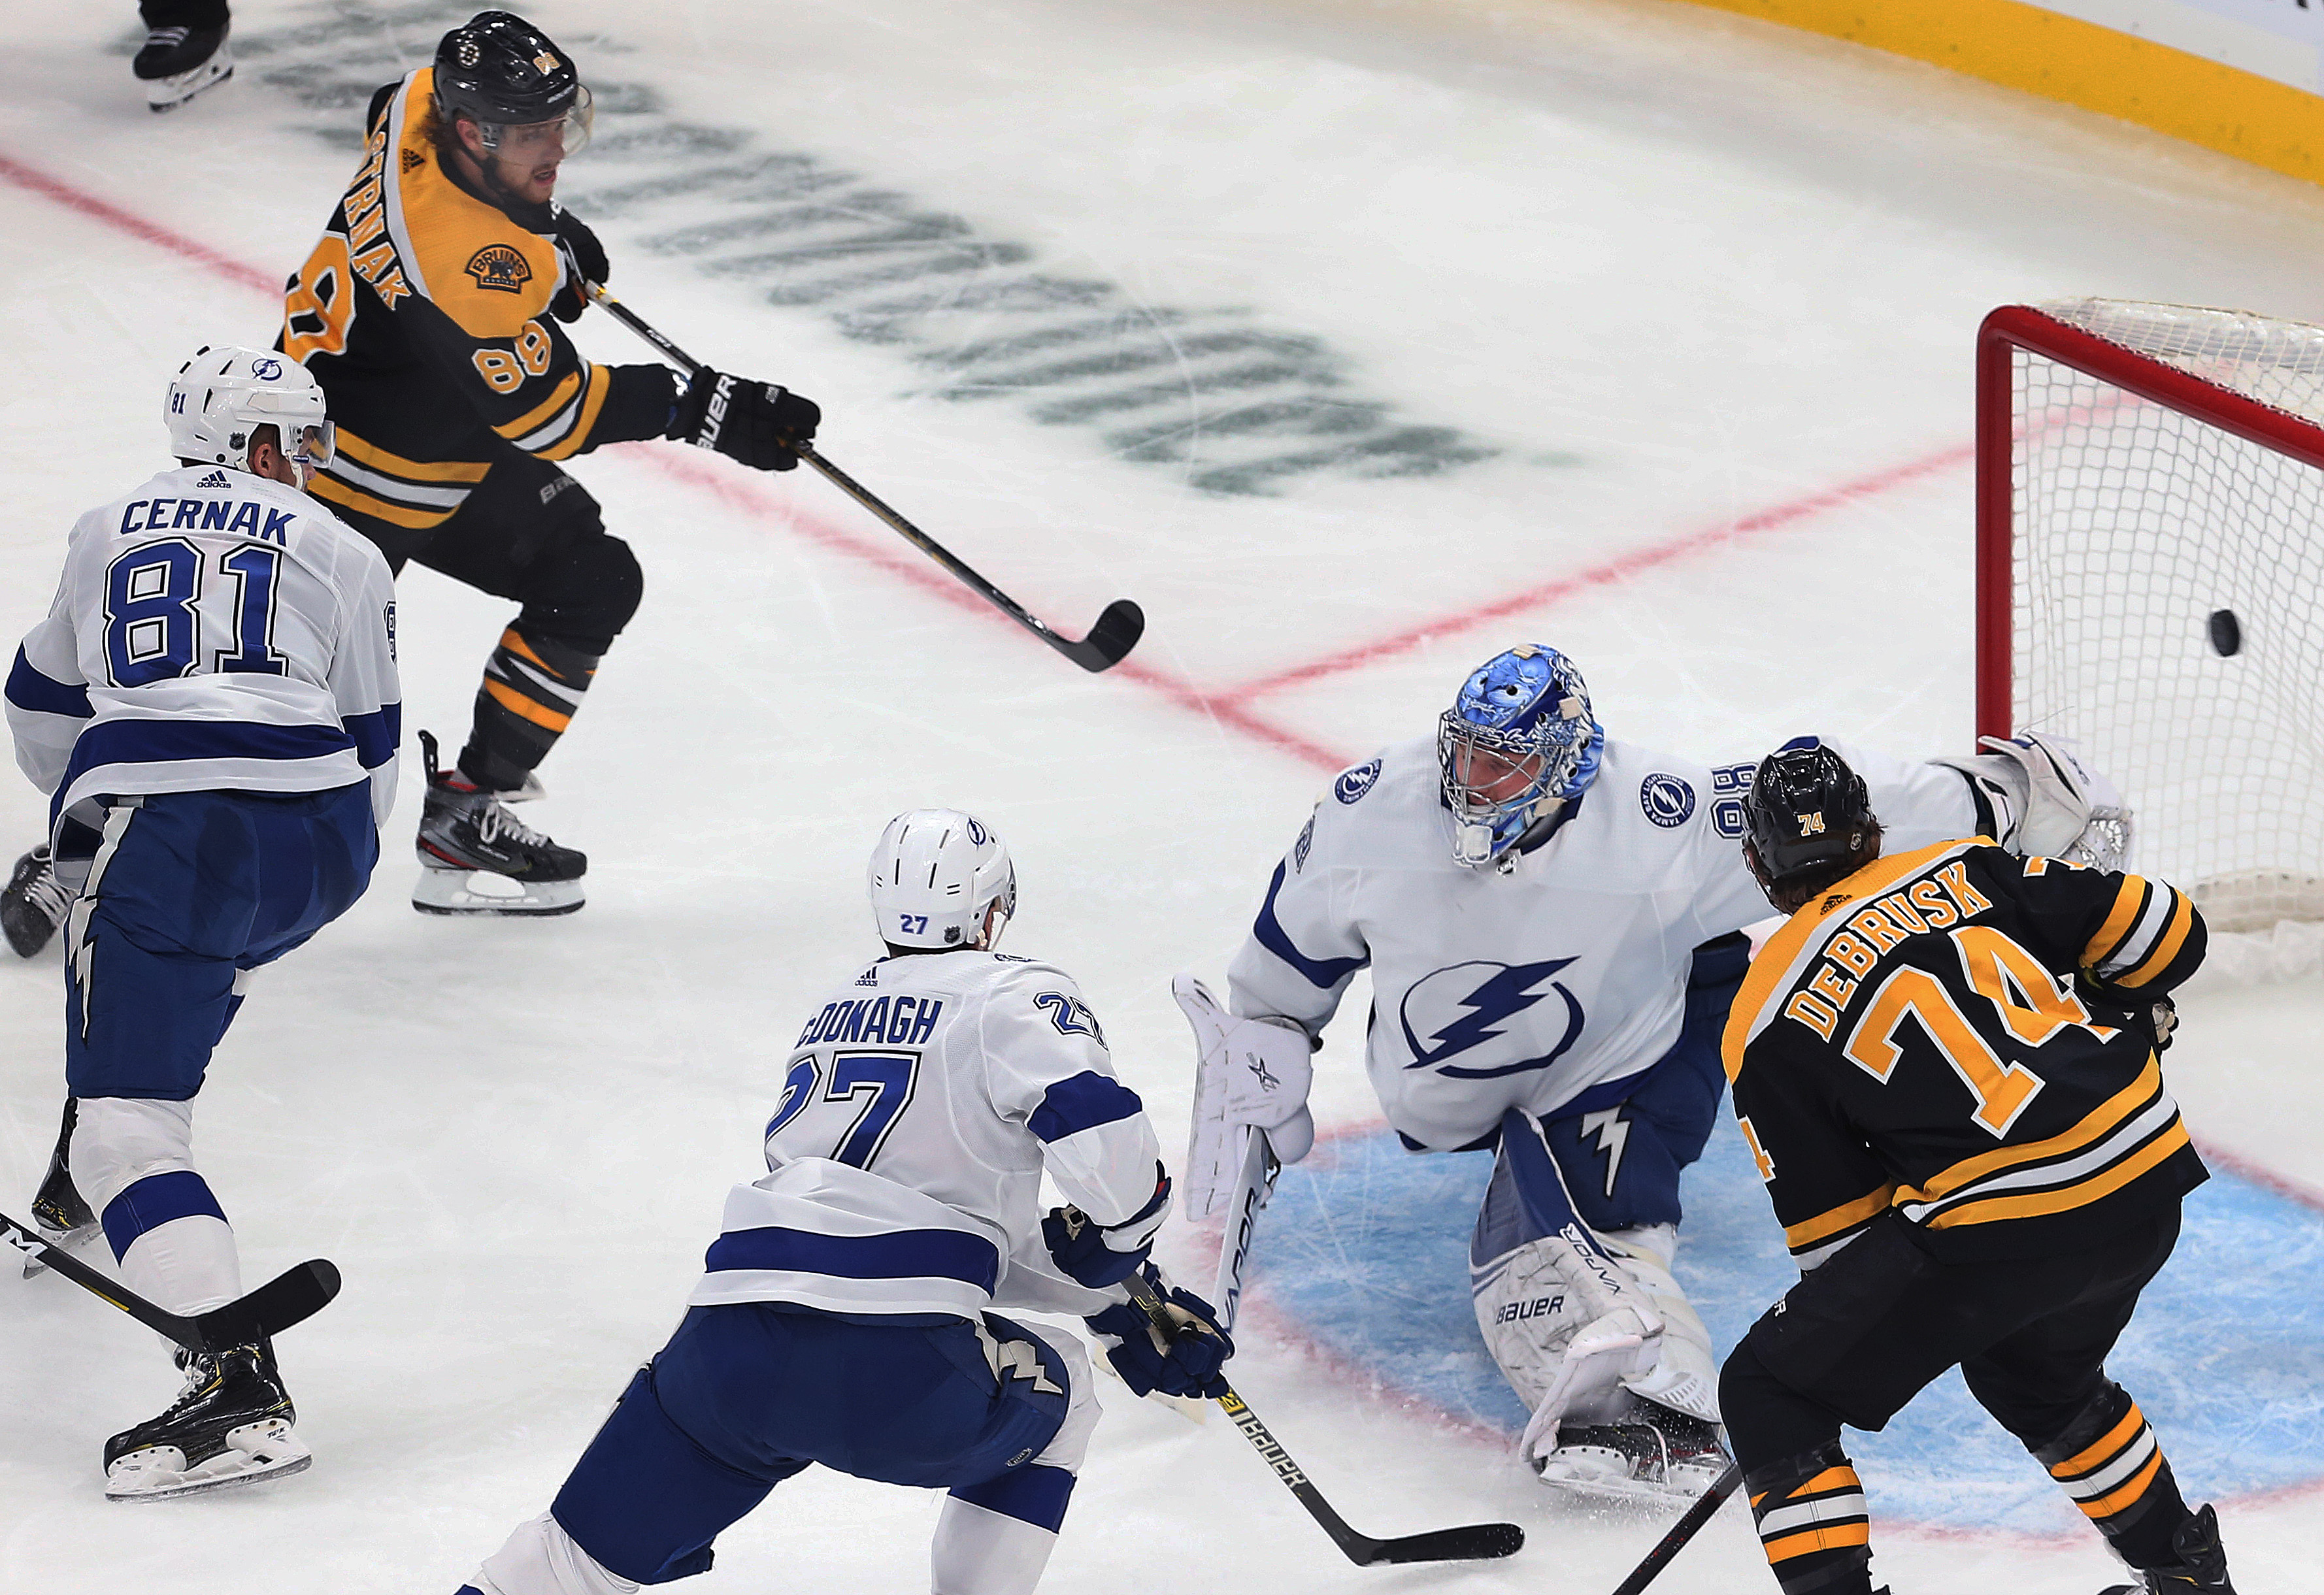 Bruins lose to rival Lightning in shootout